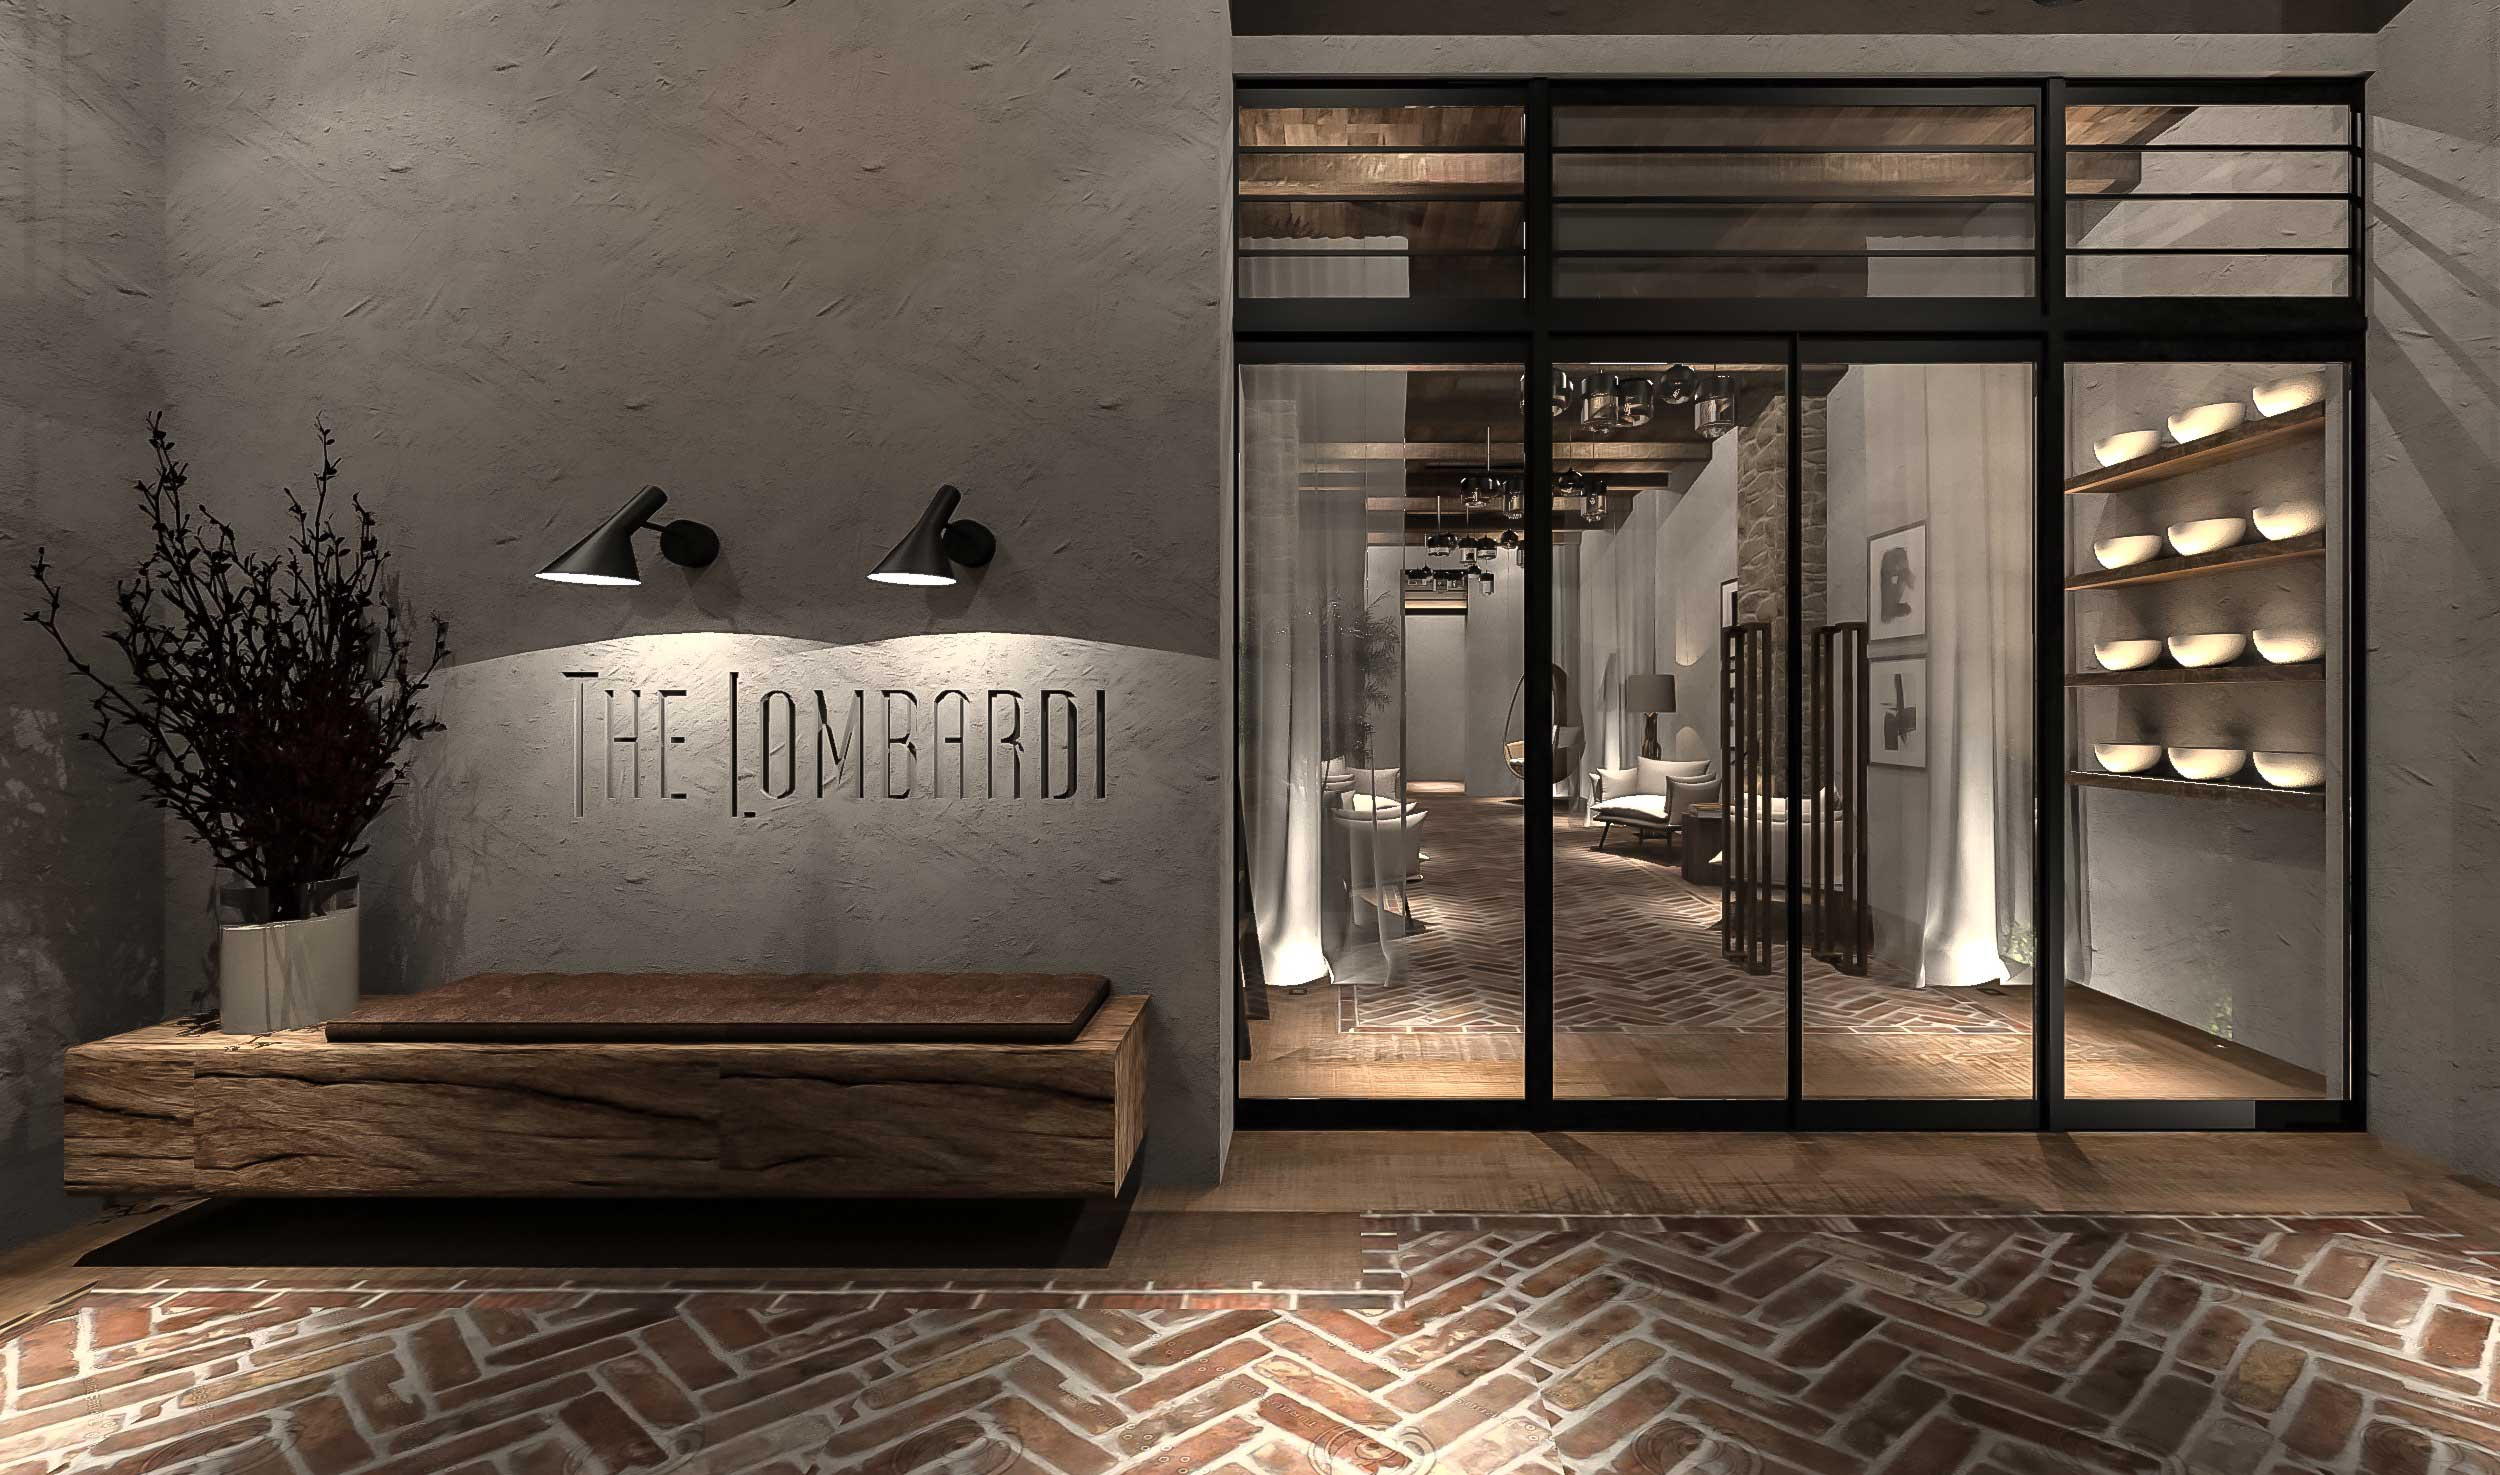 http://www.the-lombardi.com/wp-content/uploads/2014/03/Entry-Vestibule-1.jpg